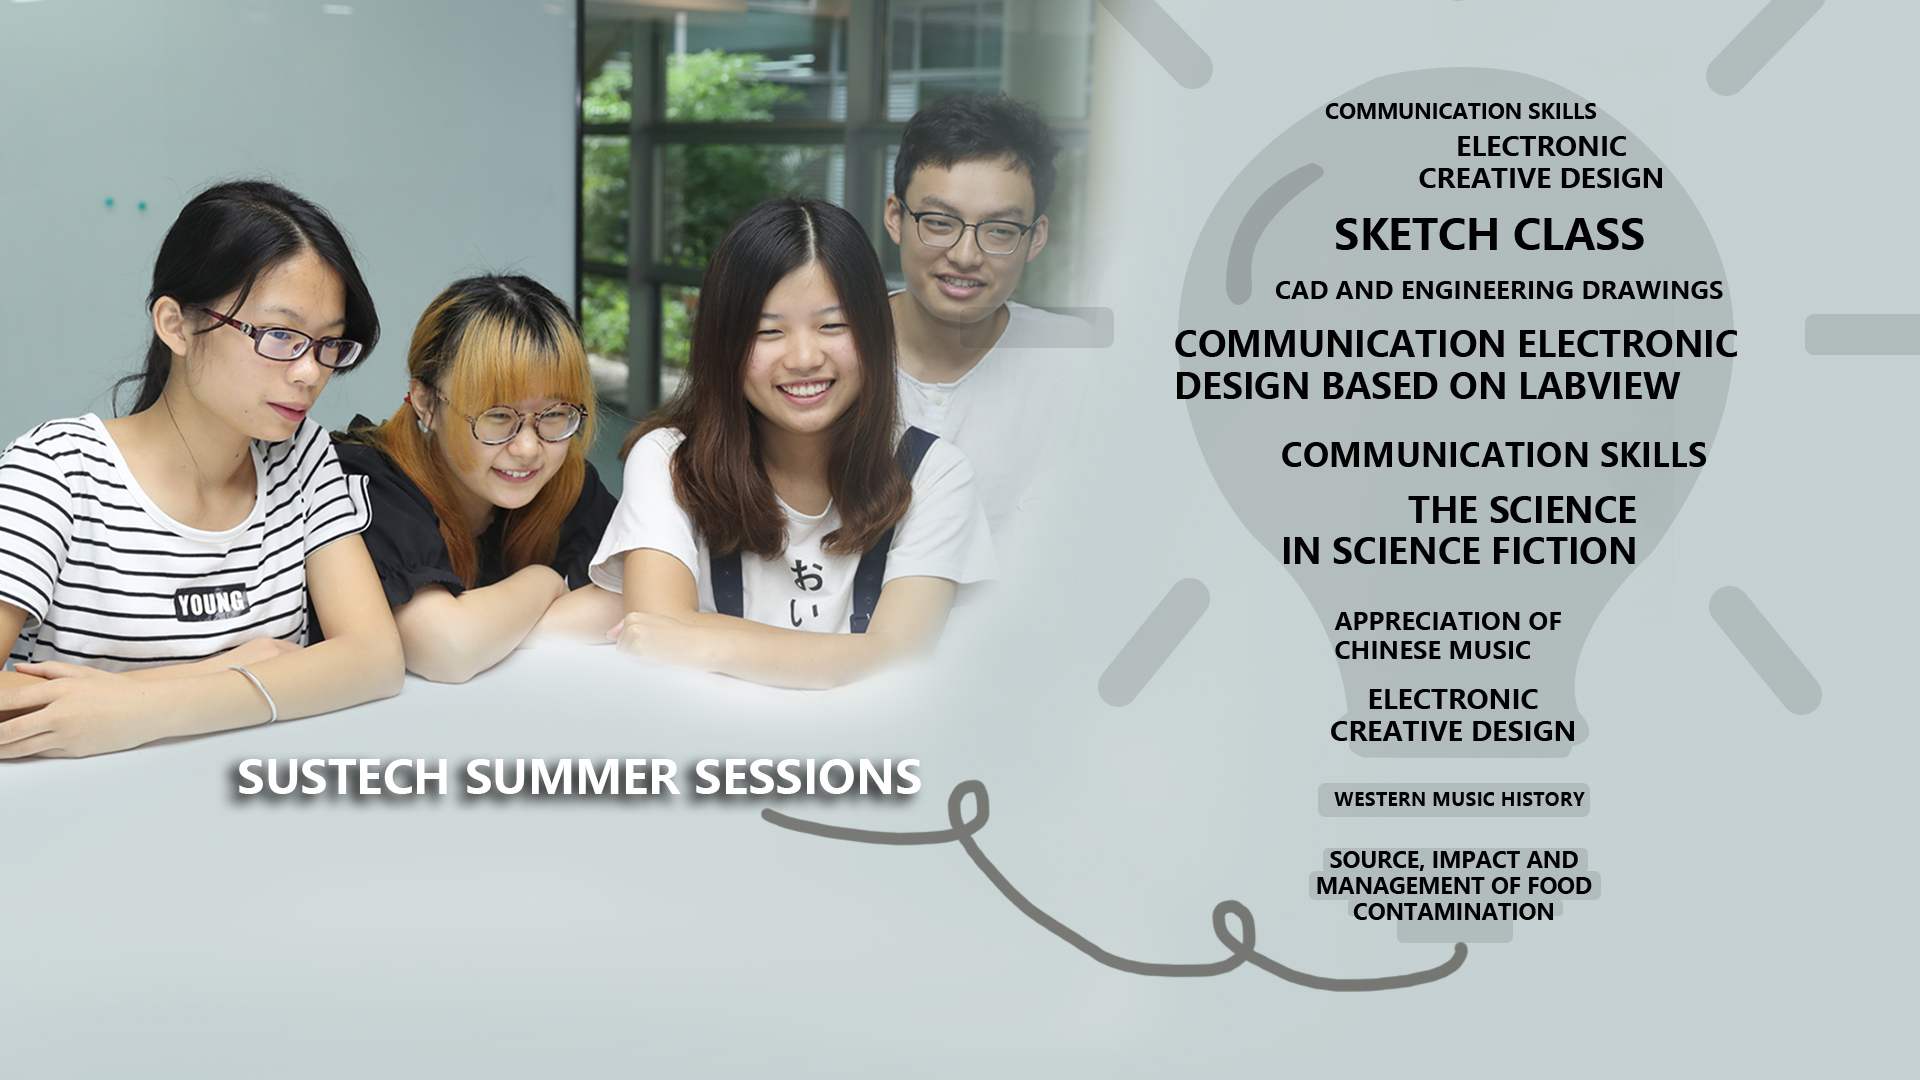 SUSTech Summer Sessions | Learn, Create, Grow